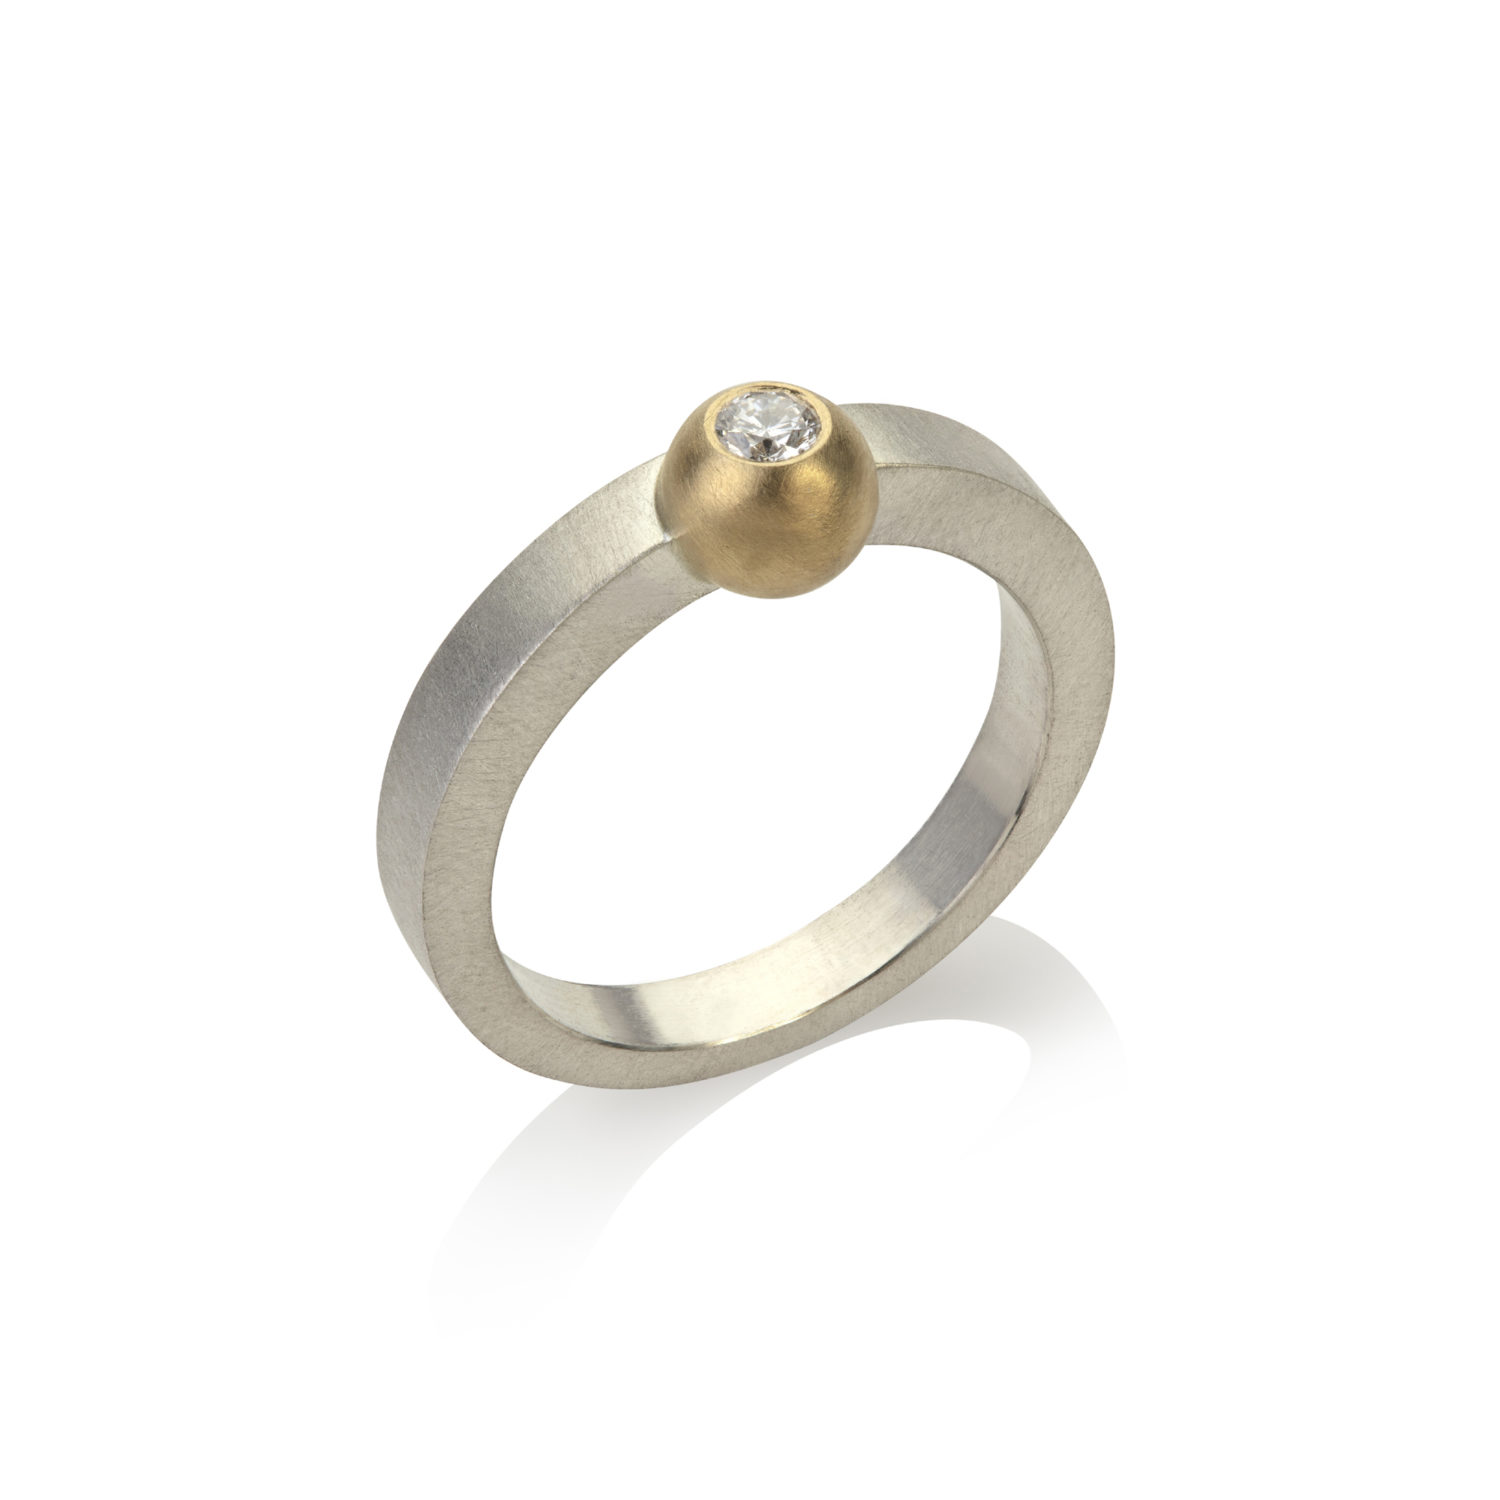 An Alleweireldt- silver ring with 18ct gold and ethical diamond – photo by Juliet Sheath